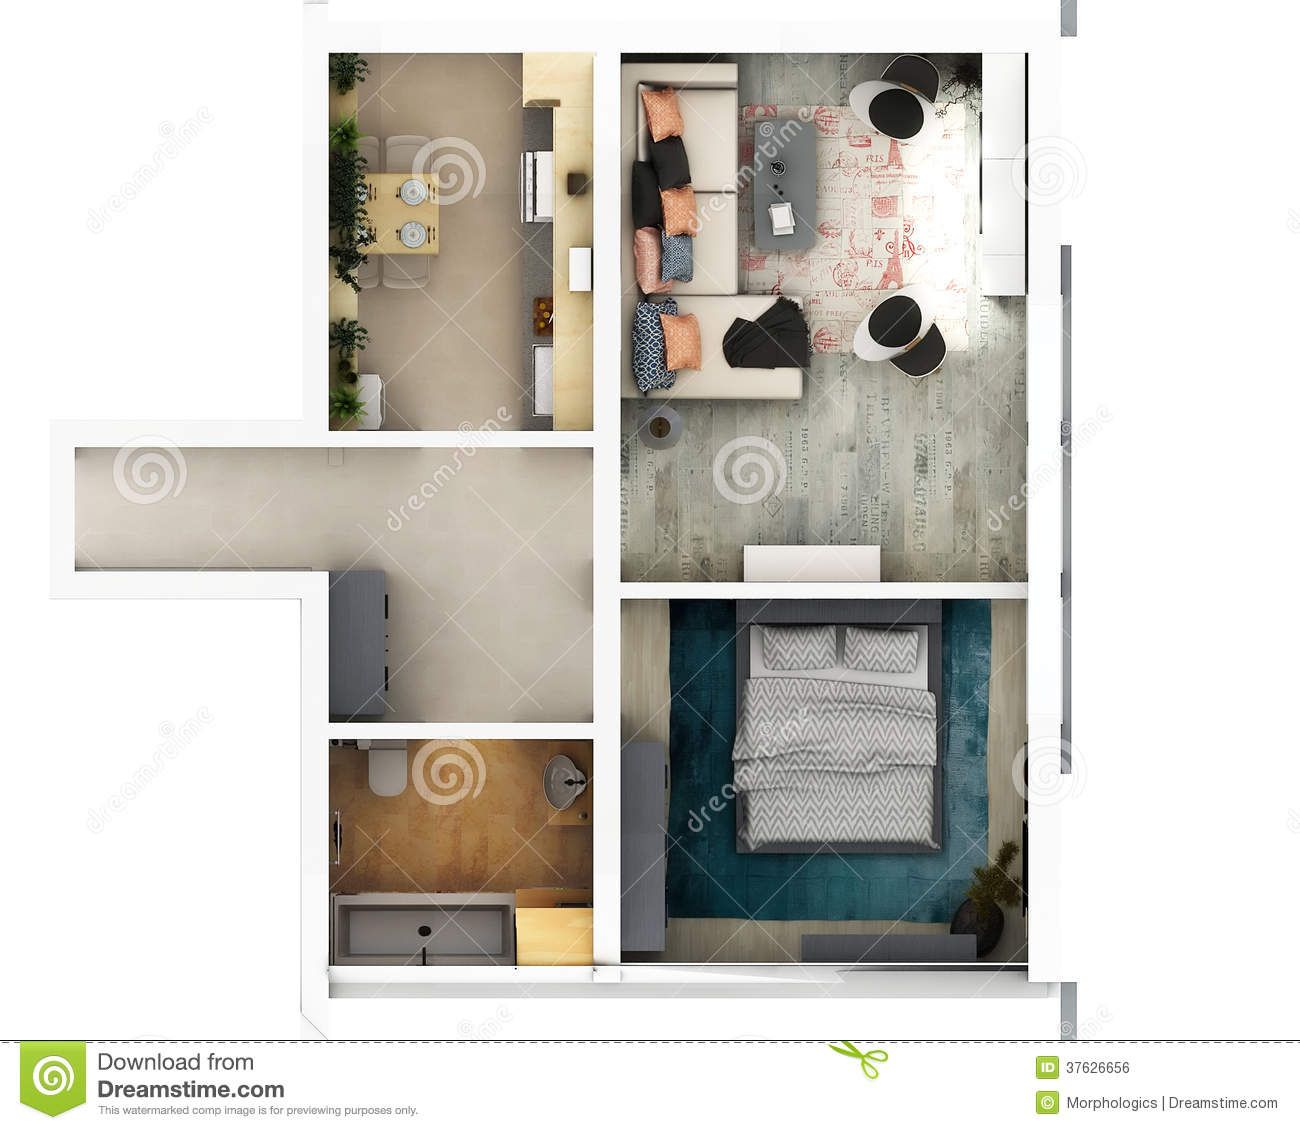 3d Floor Plan Royalty Free Stock Image Image 37626656